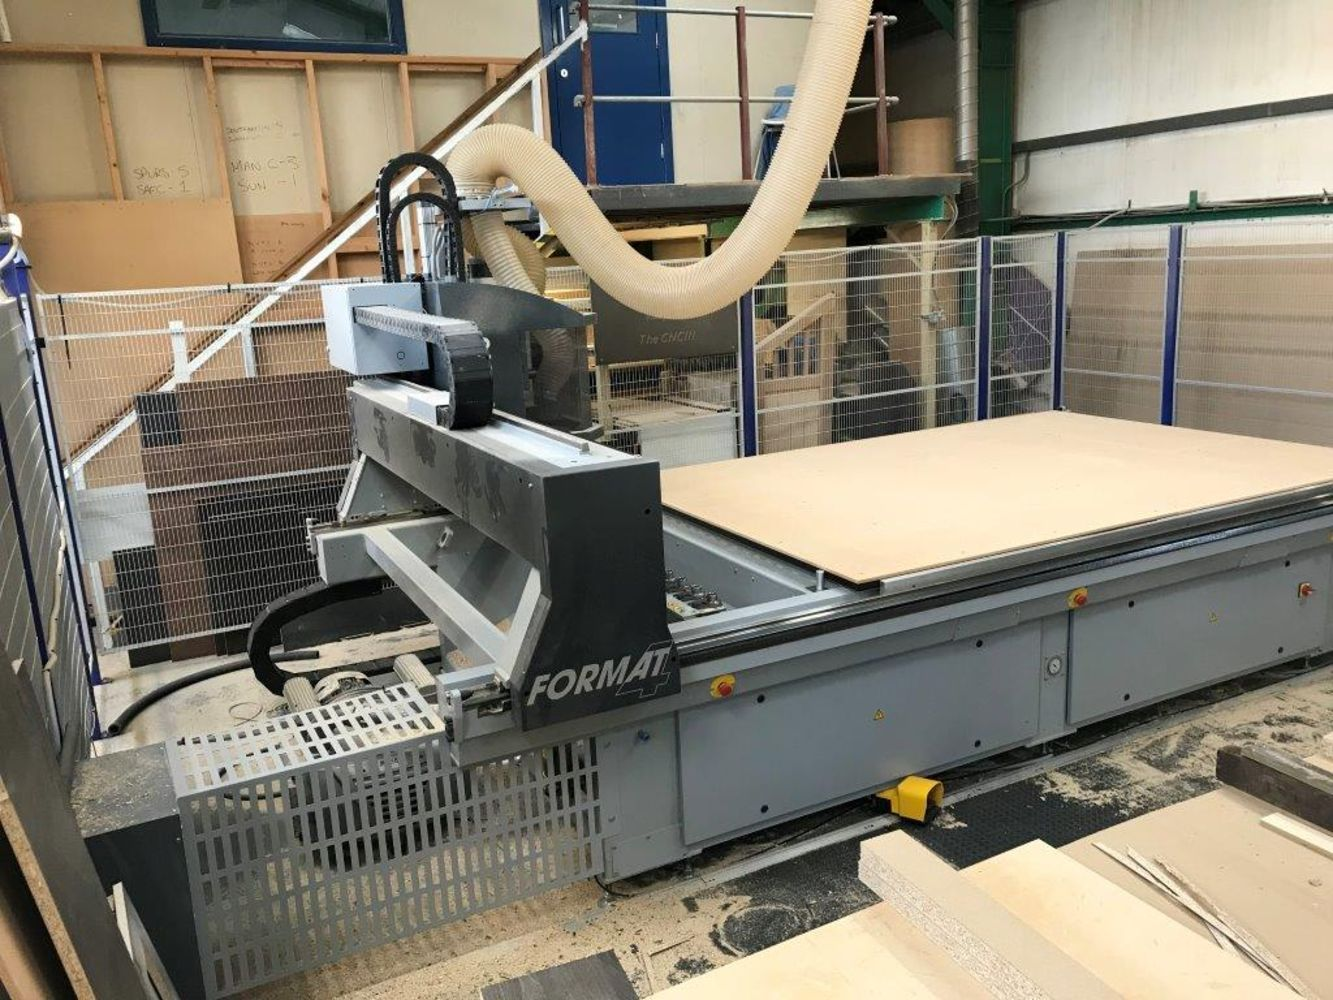 Woodworking Machinery, Joiners Tools & Equipment and Residual Timber Stocks